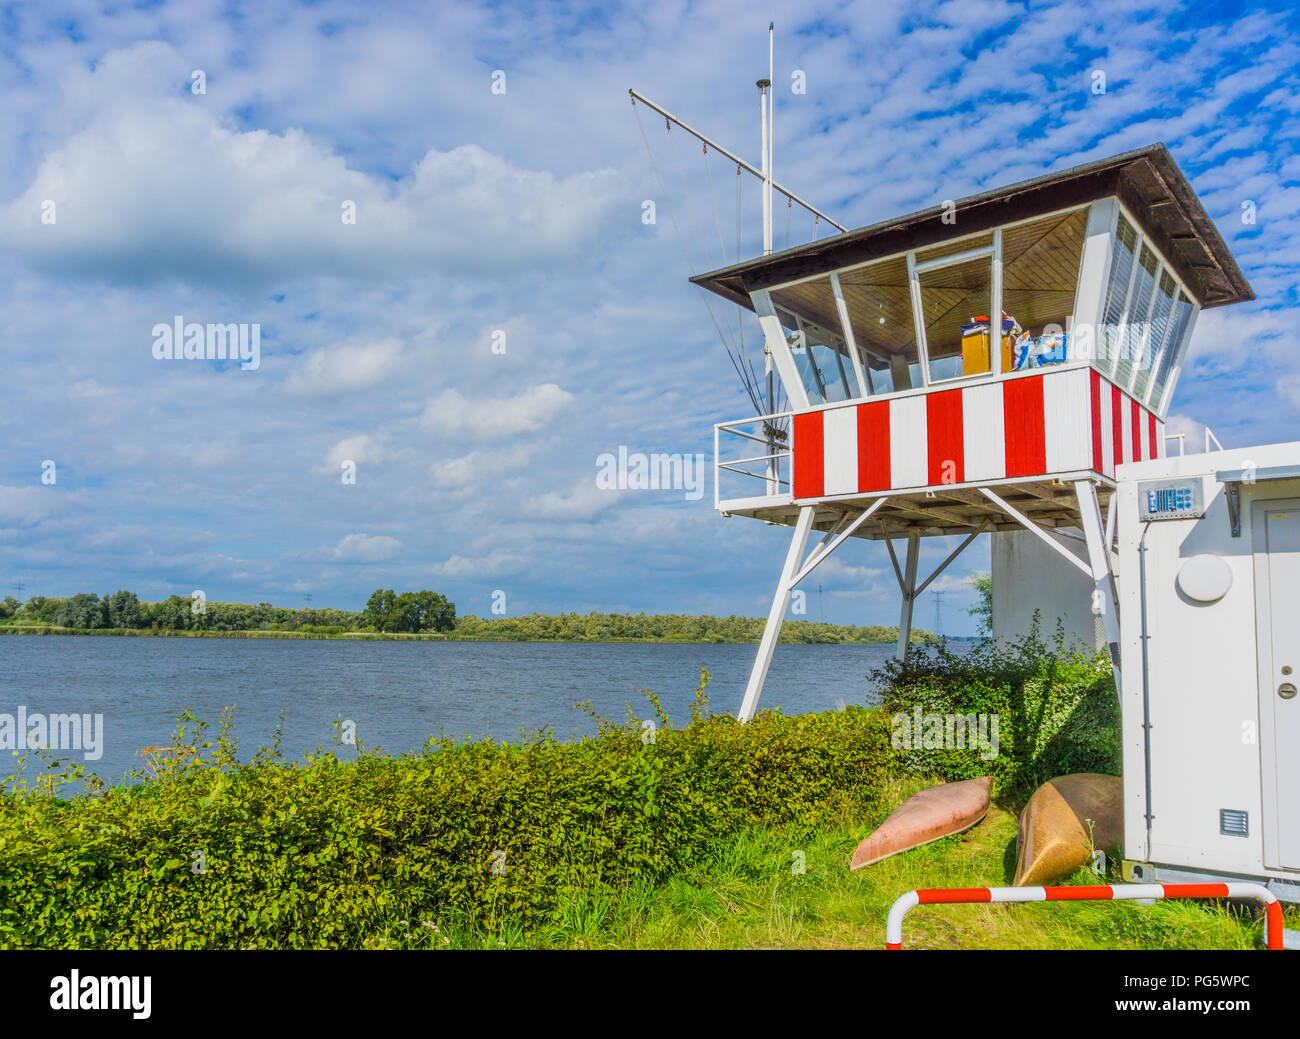 lifegaurd house at a river landscape Stock Photo